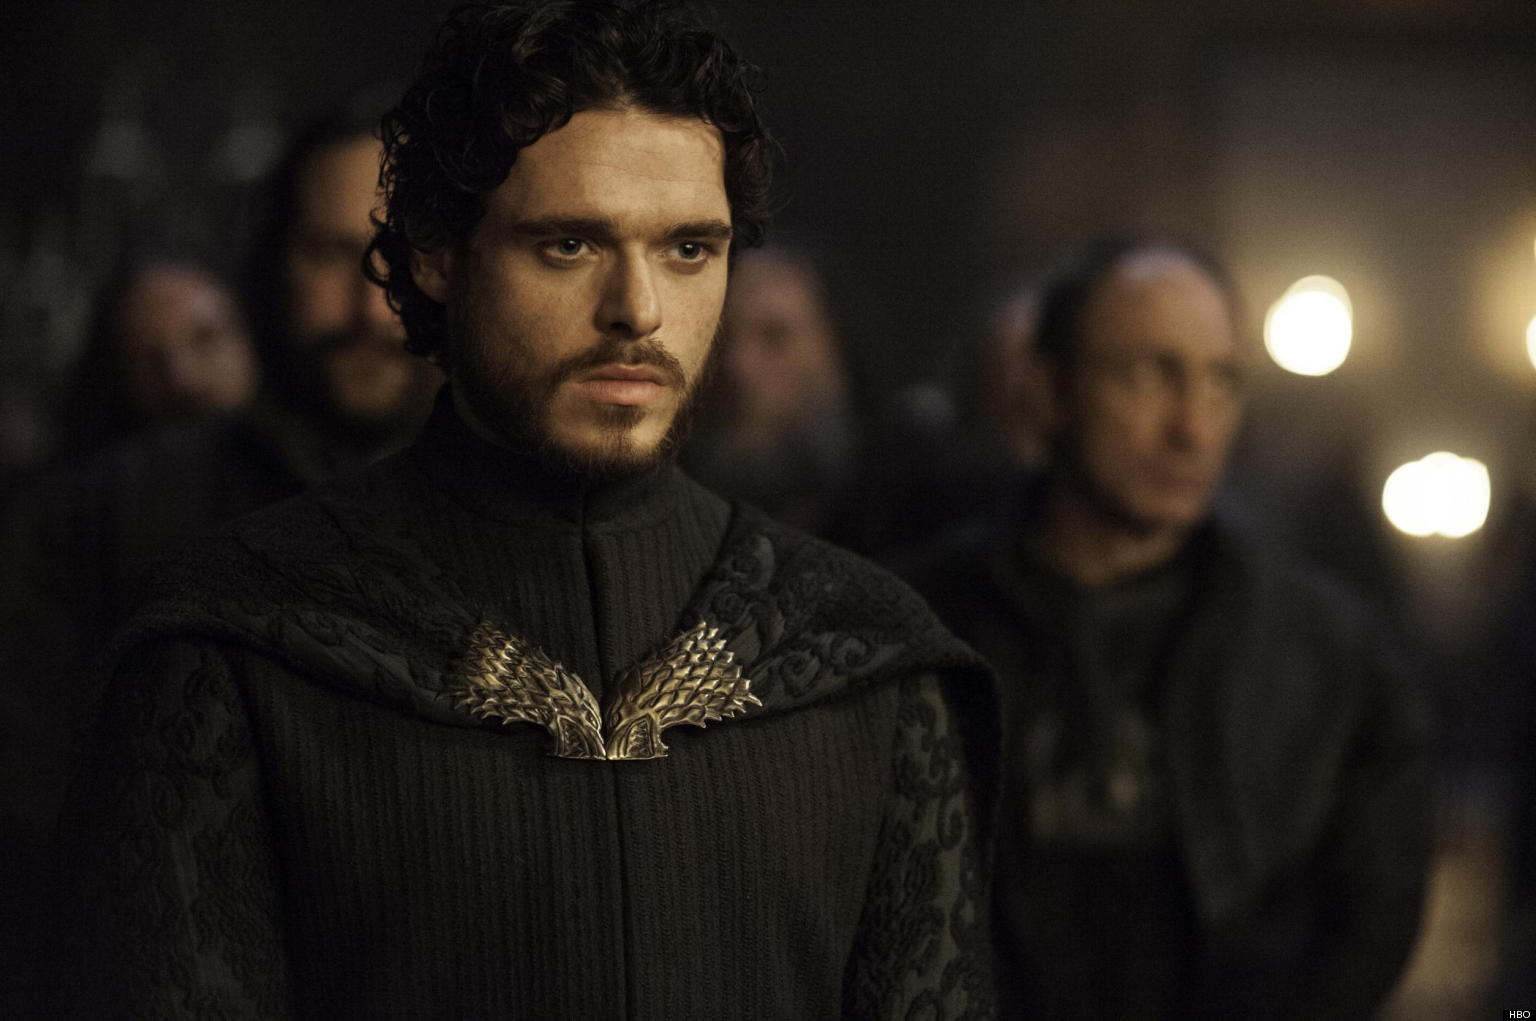 39 game of thrones 39 robb stark speaks richard madden addresses shocking developments huffpost. Black Bedroom Furniture Sets. Home Design Ideas